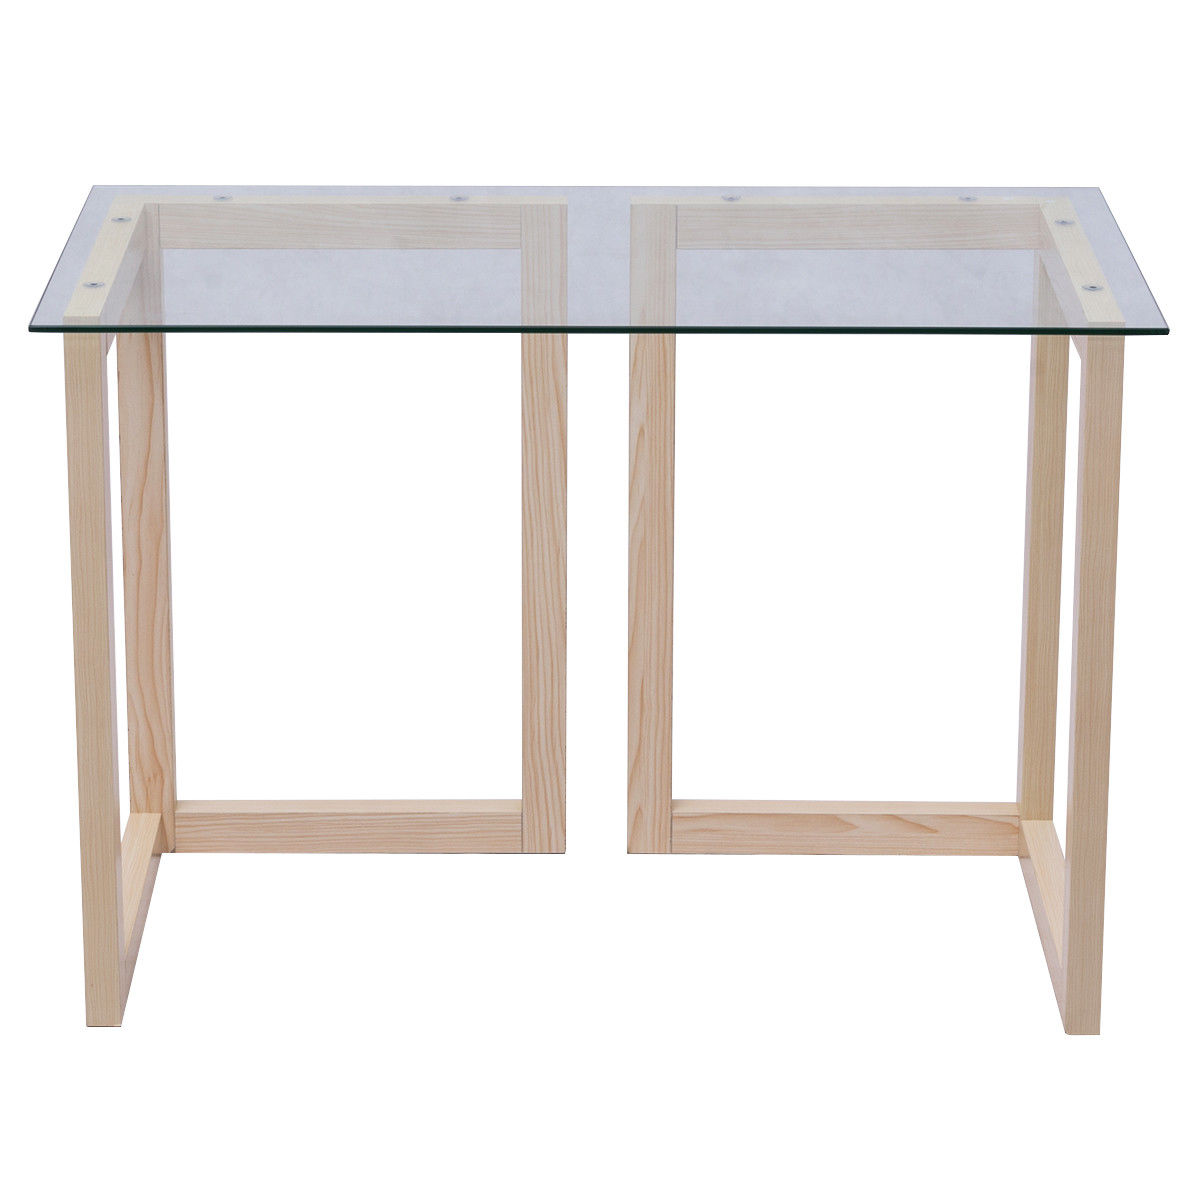 Gymax 44'' Tempered Glass Top Console Desk Sofa Accent Table Wood Entryway Furniture by Gymax